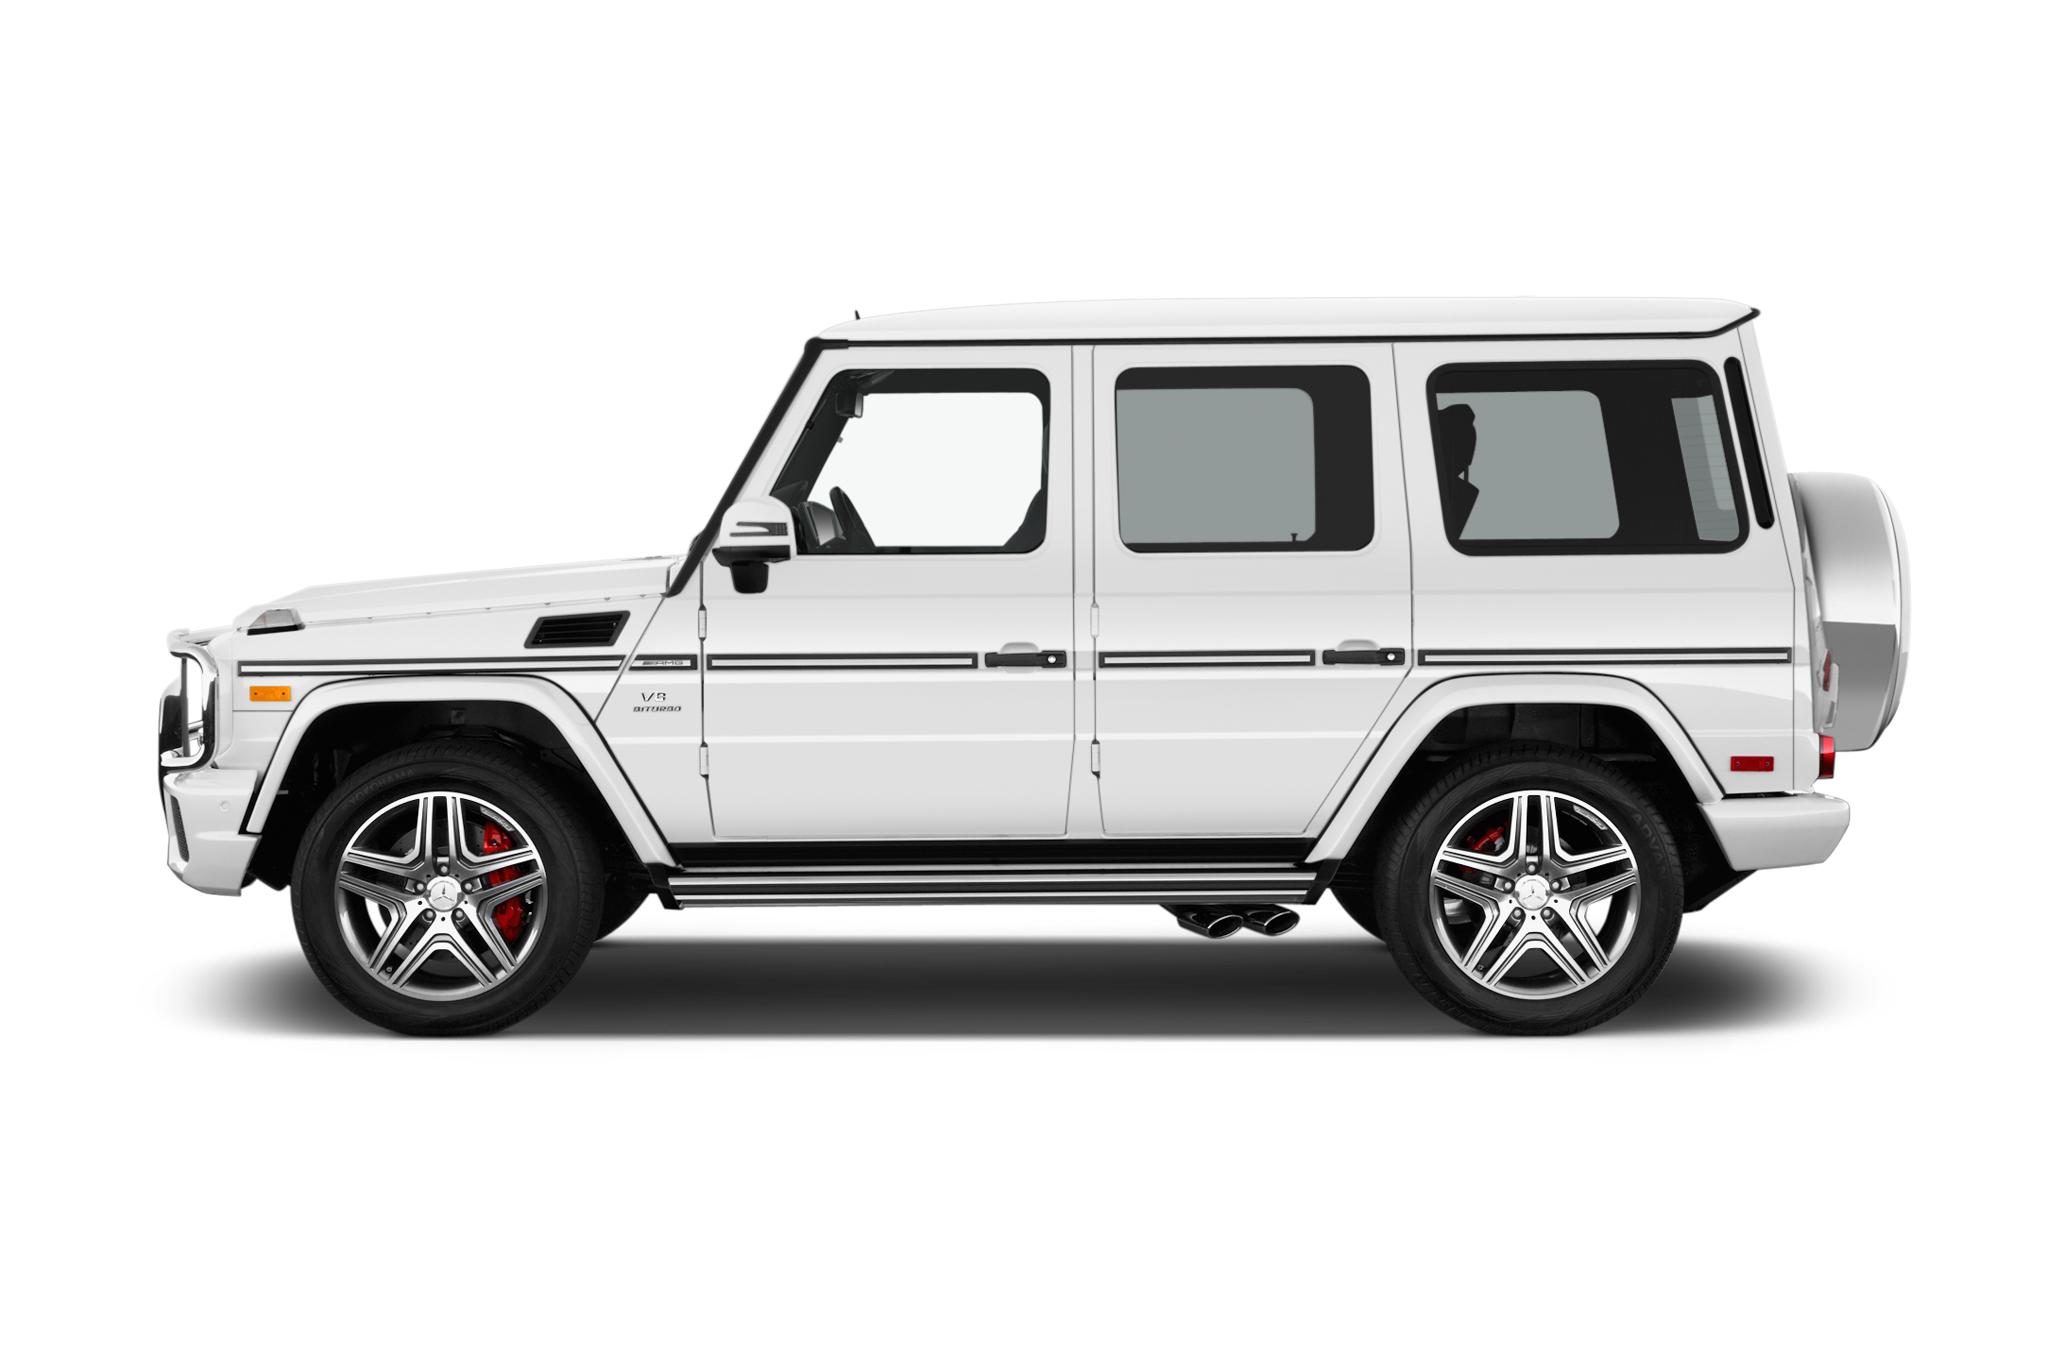 Mercedes benz g500 4x4 squared detailed ahead of geneva debut for Mercedes benz suv g class